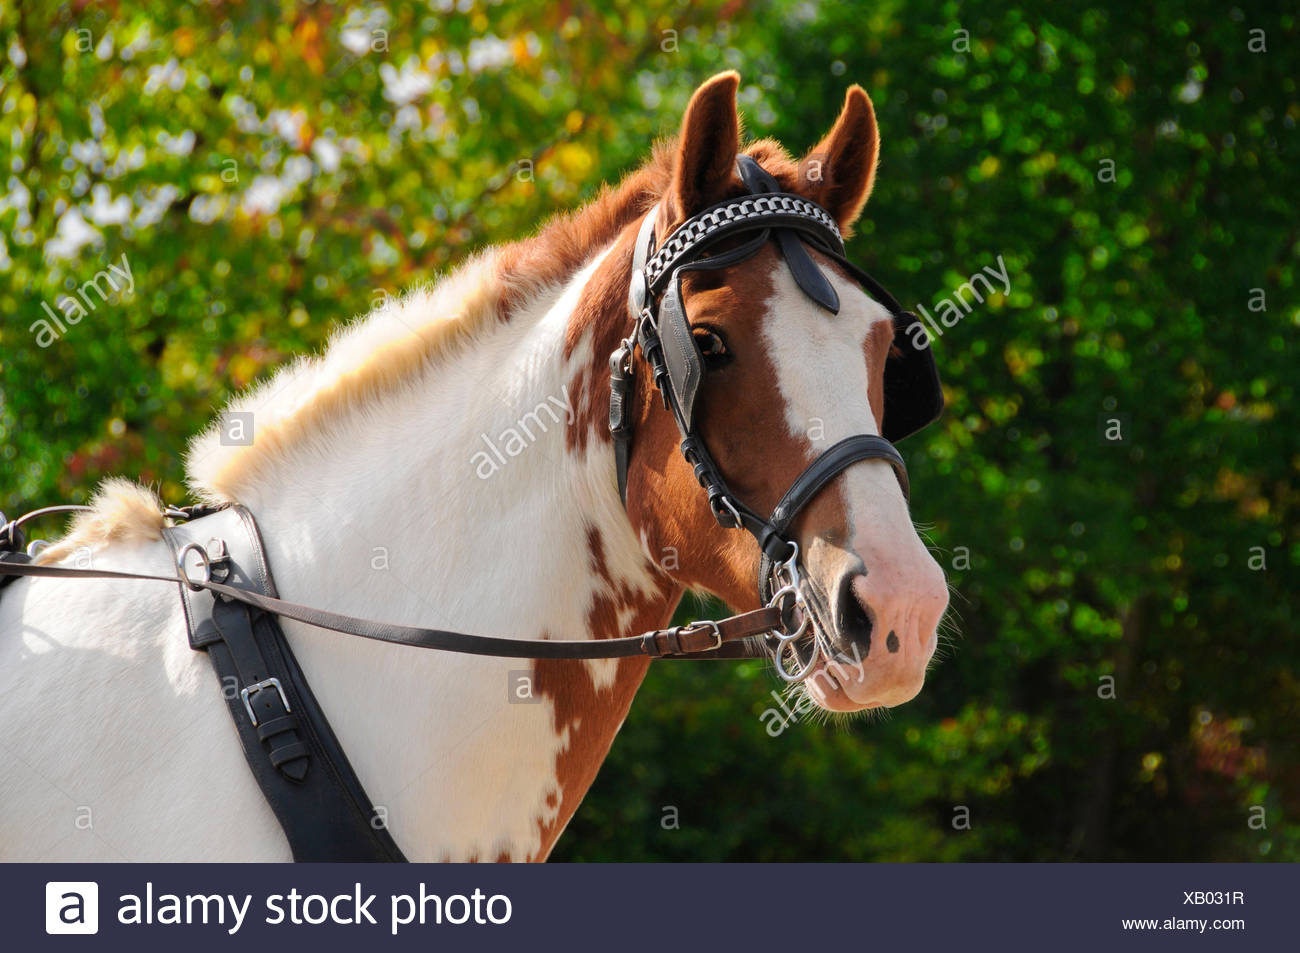 Horse Driving   Single Horse  Breastcollar Harness  Harness